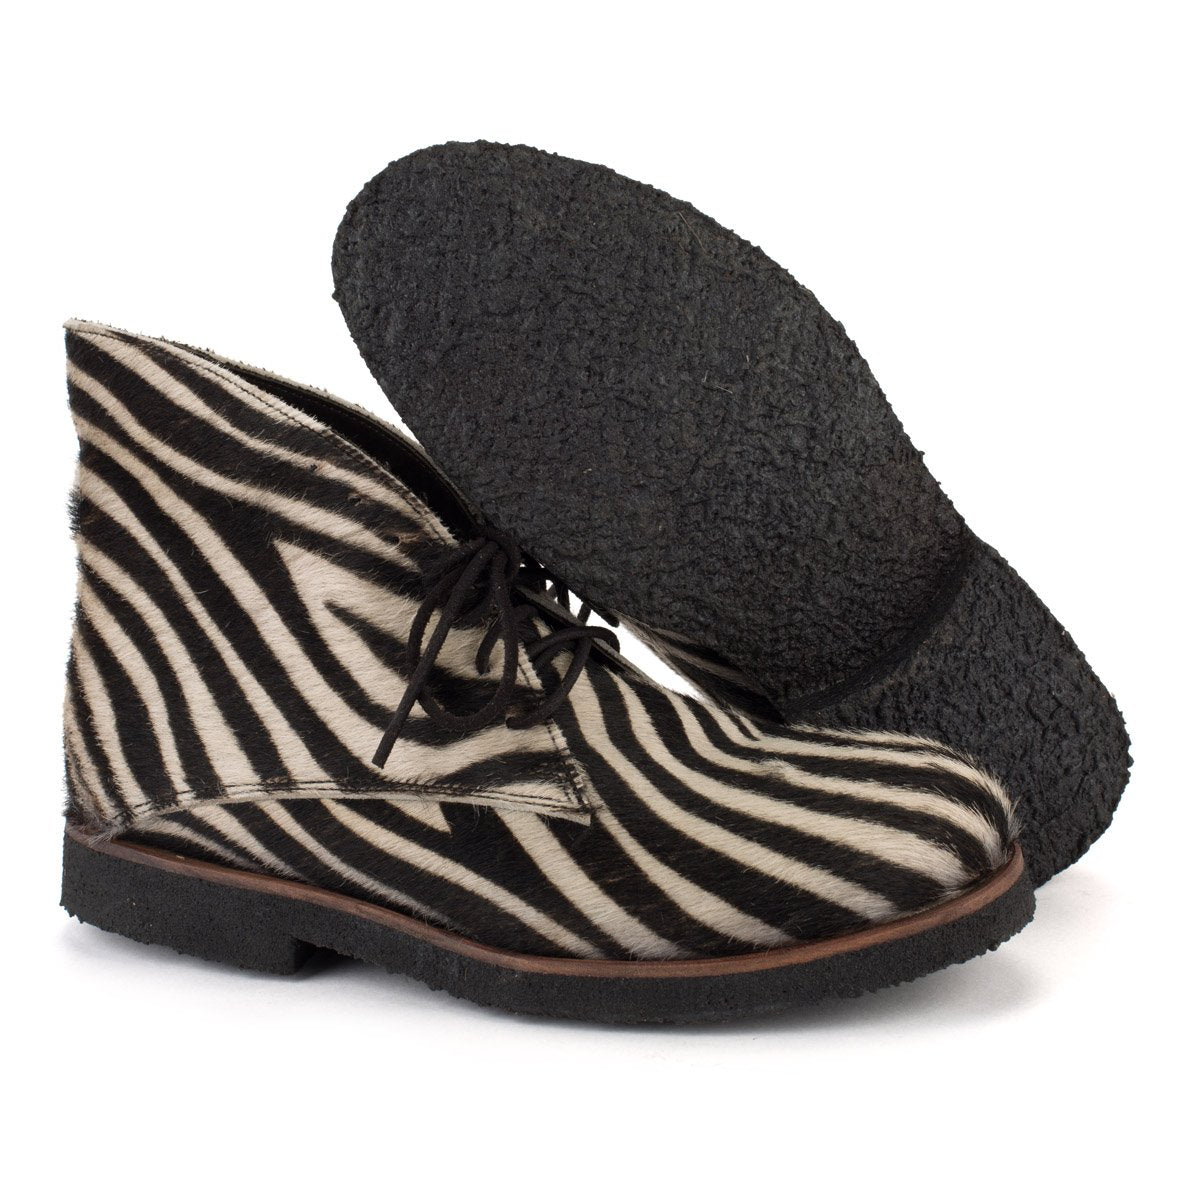 DRESS30 DESERT BOOTS – Zebra